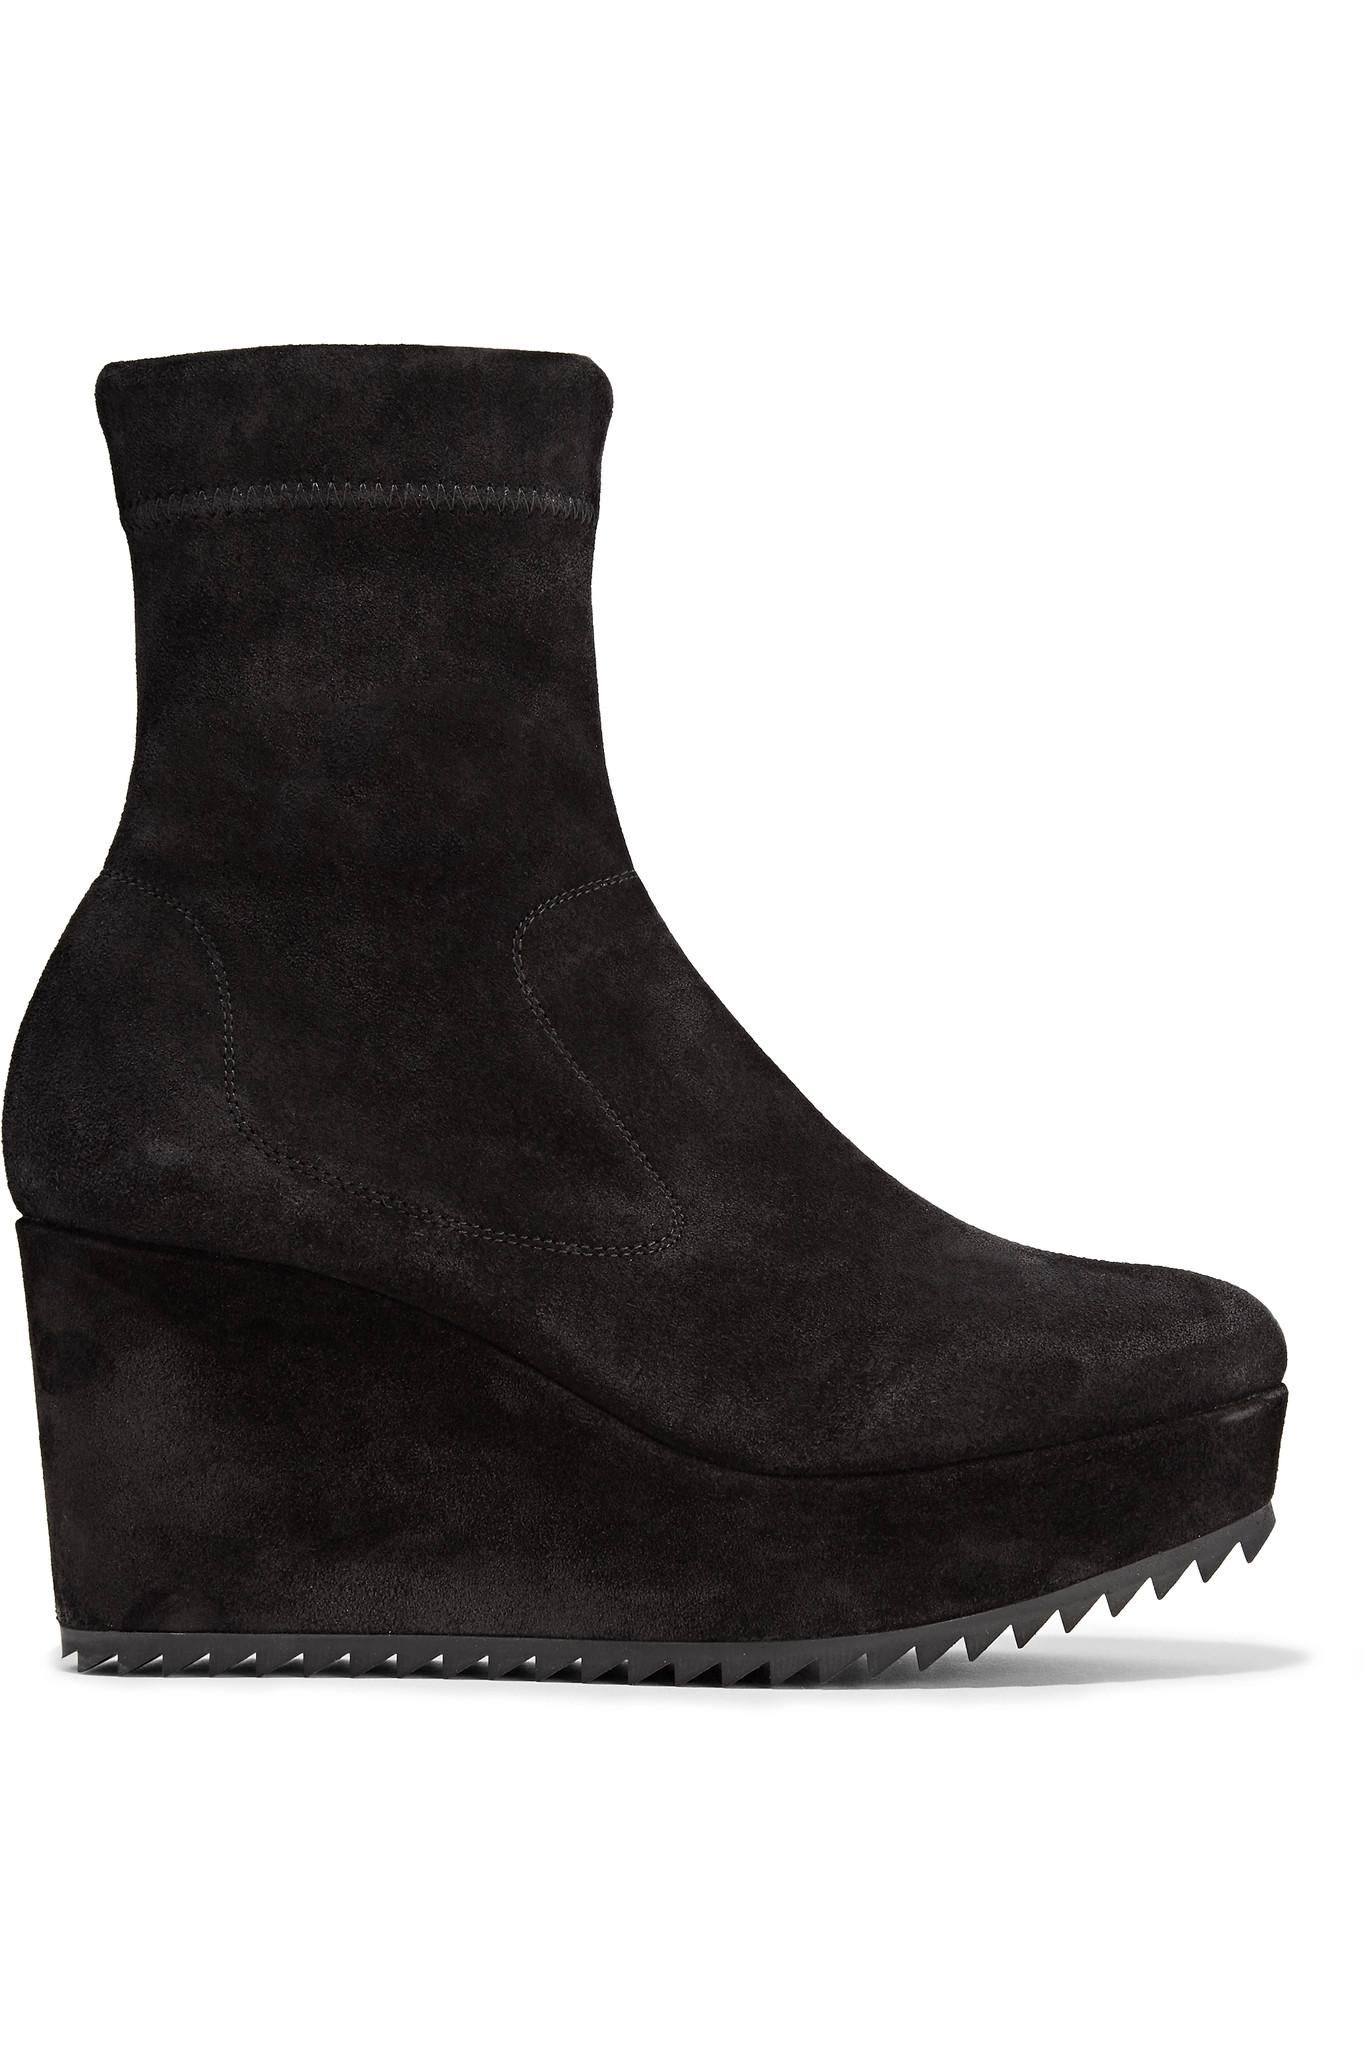 pedro garcia urika stretch suede wedge ankle boots in